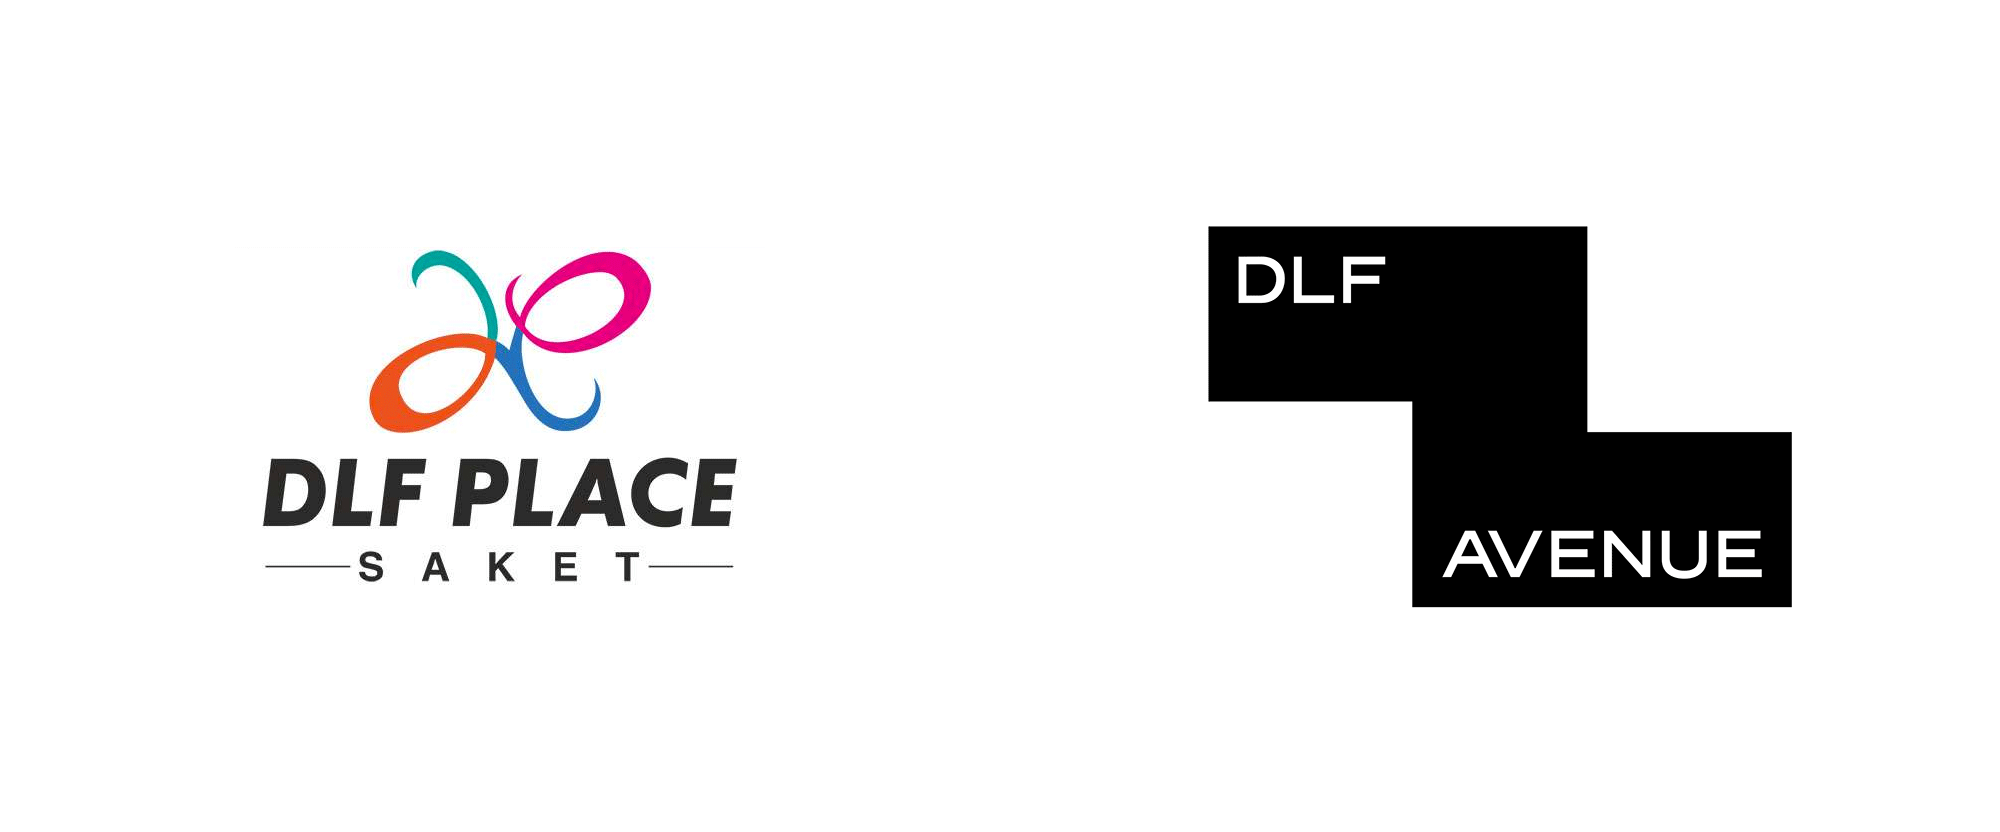 New Logo and Identity for DLF Avenue by Wieden + Kennedy, Delhi